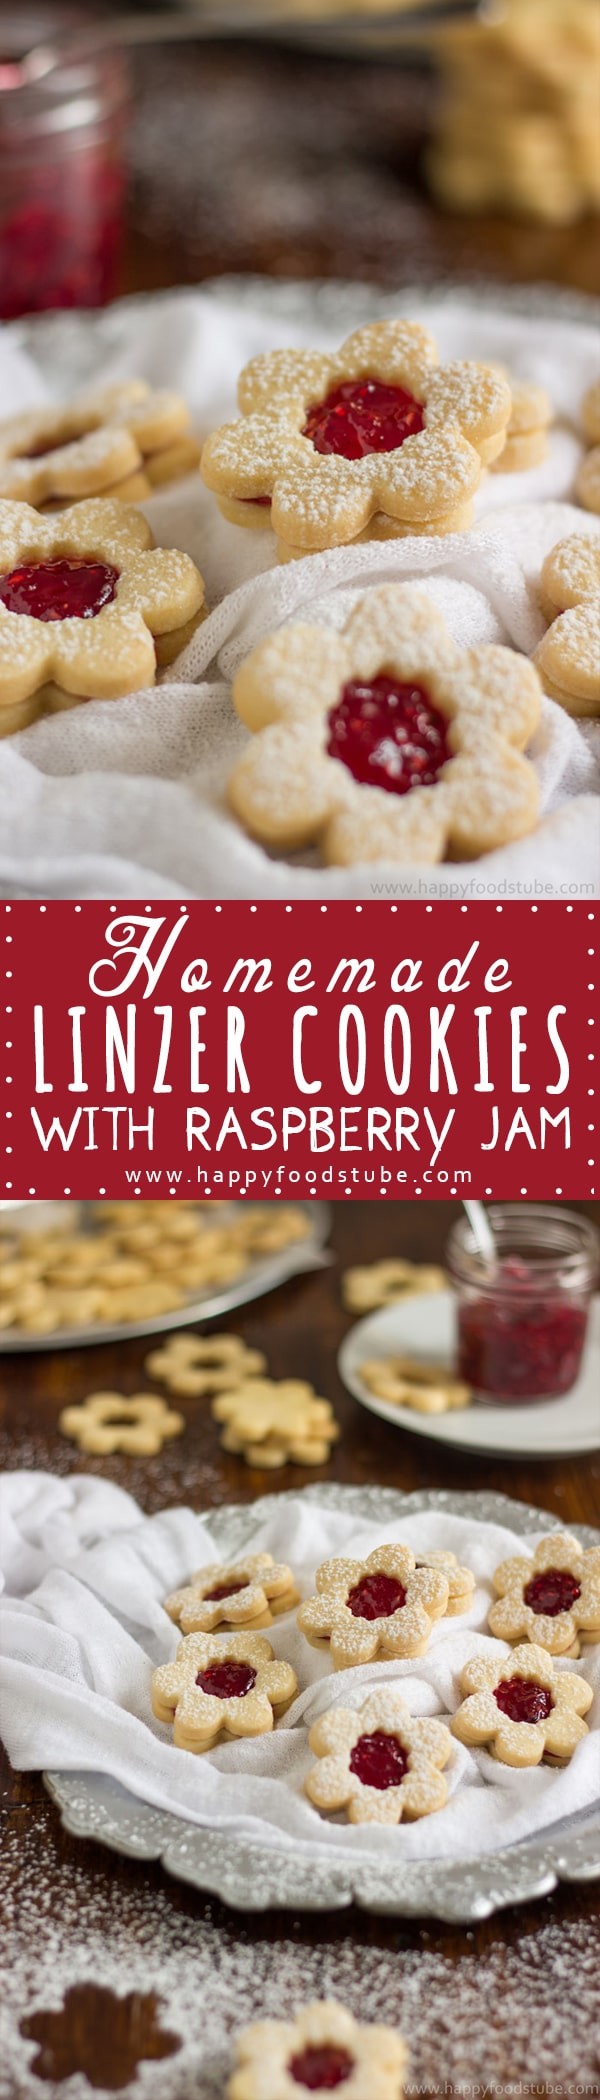 Homemade Linzer Cookies with Raspberry Jam Recipe. Their rich buttery taste that goes so well with raspberry jam makes them perfect treats for afternoon tea. Only 5 ingredients and ready in 20 minutes